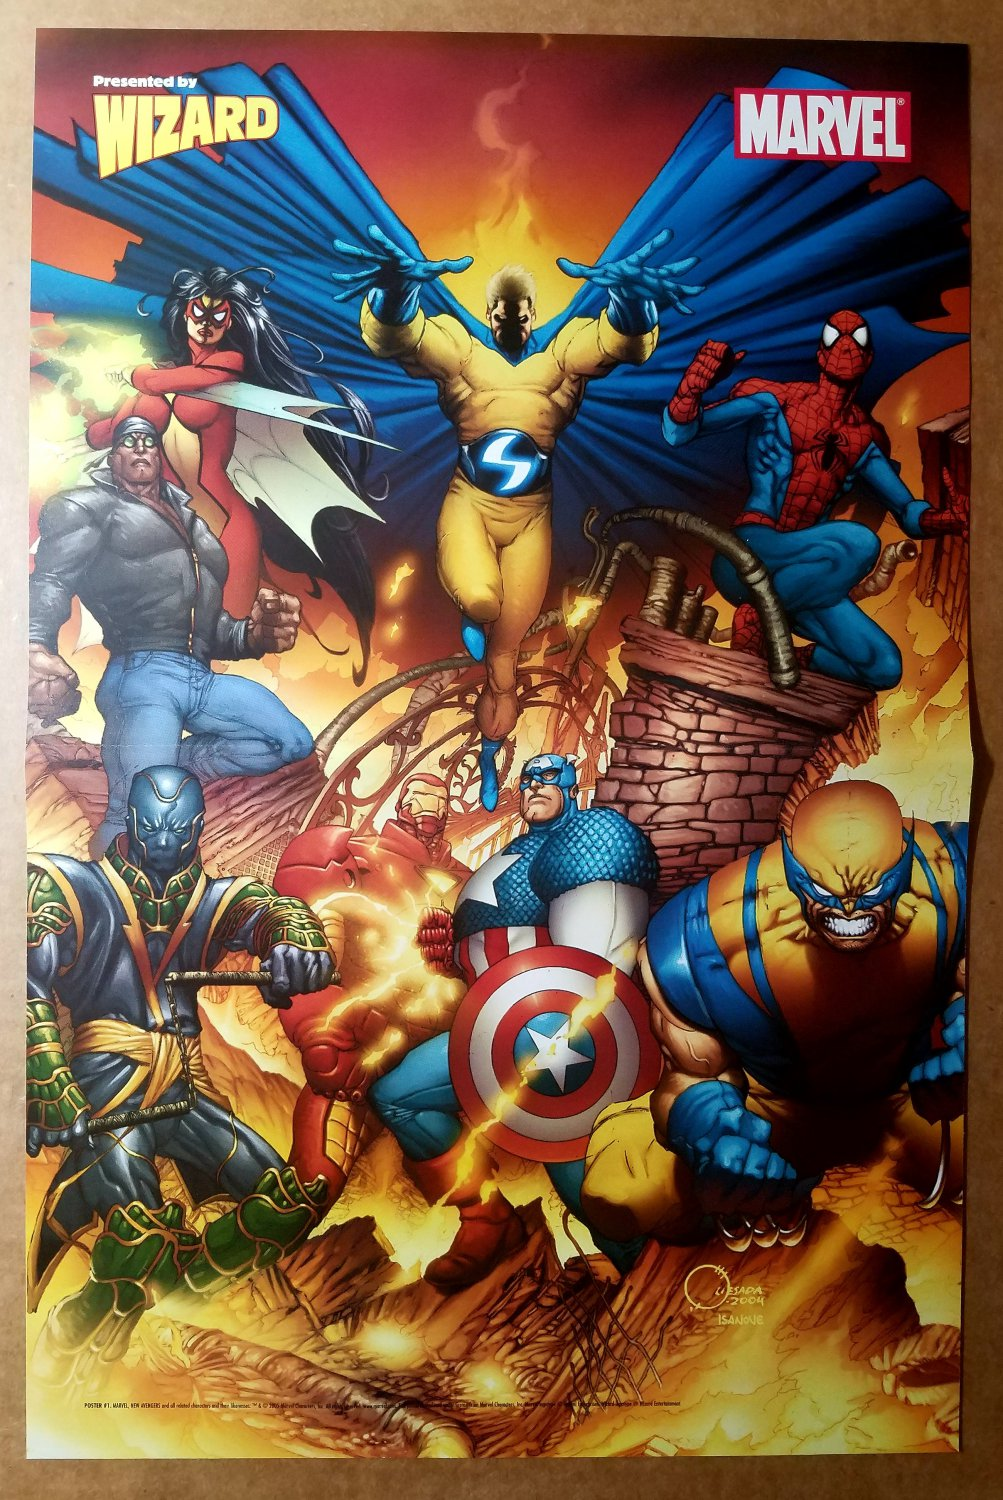 New Avengers Marvel Comics Poster by Joe Quesada